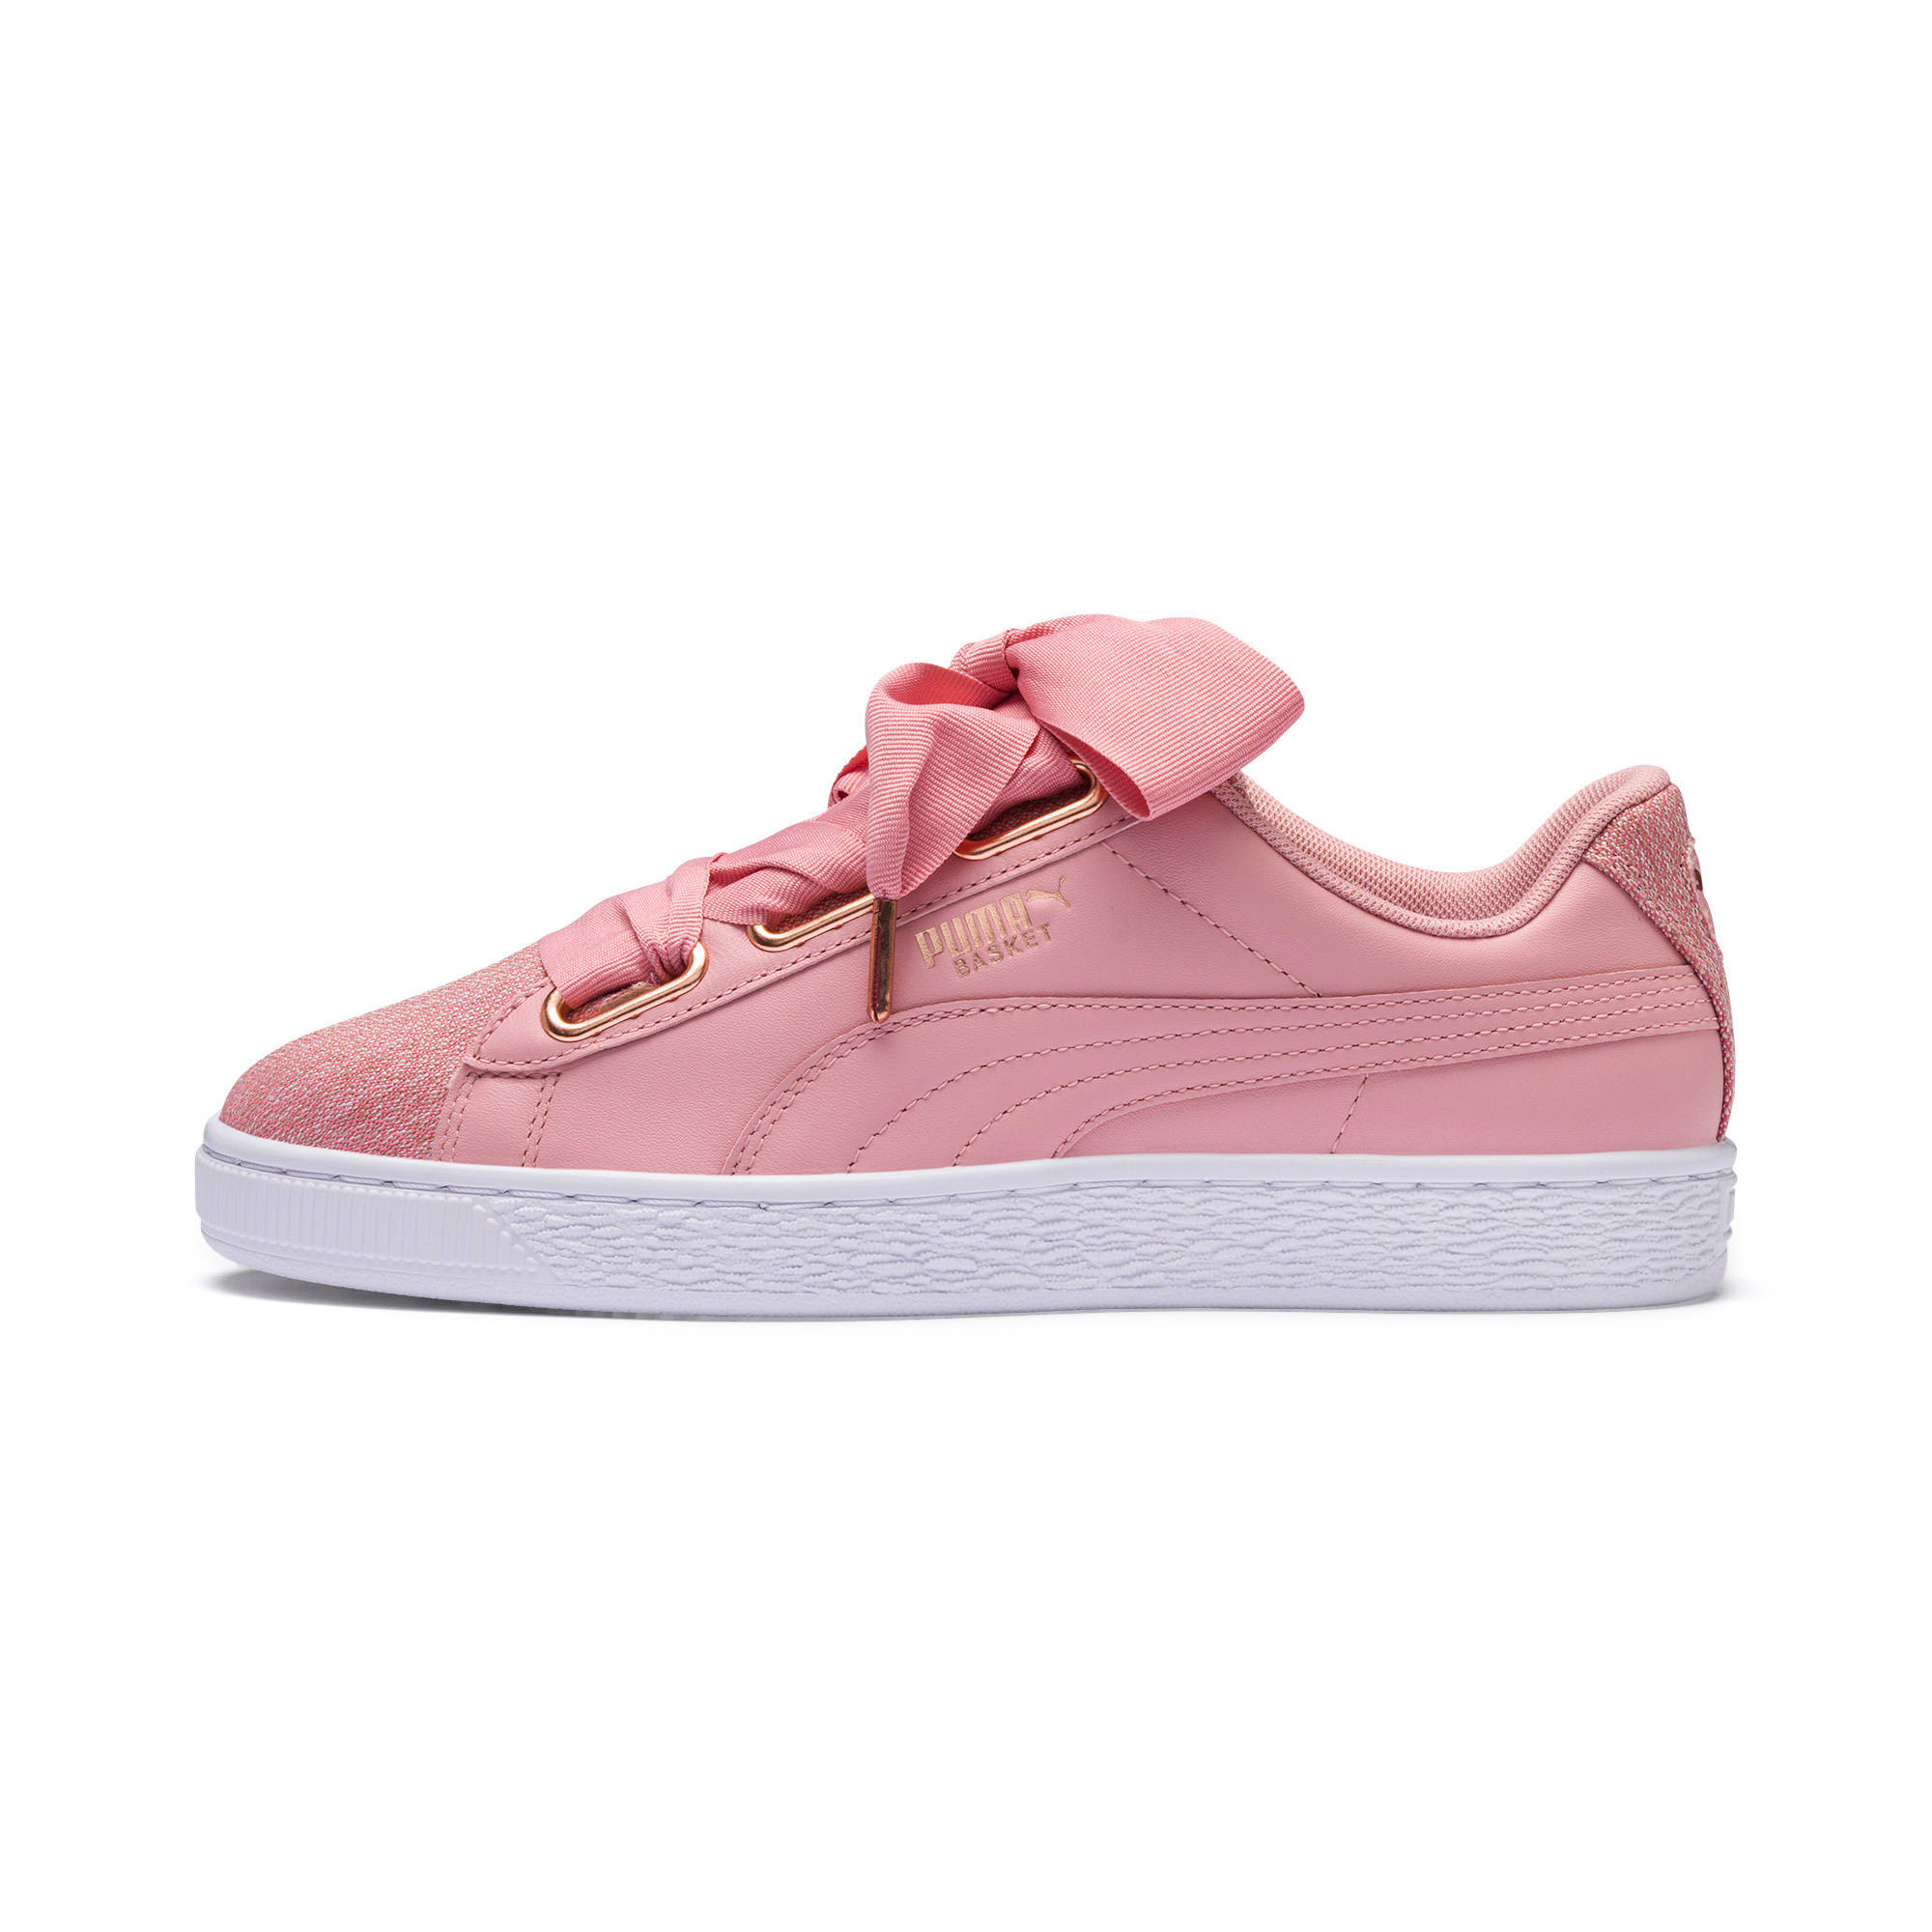 uk availability 9f478 af31e Basket Heart Woven Rose Women's Sneakers